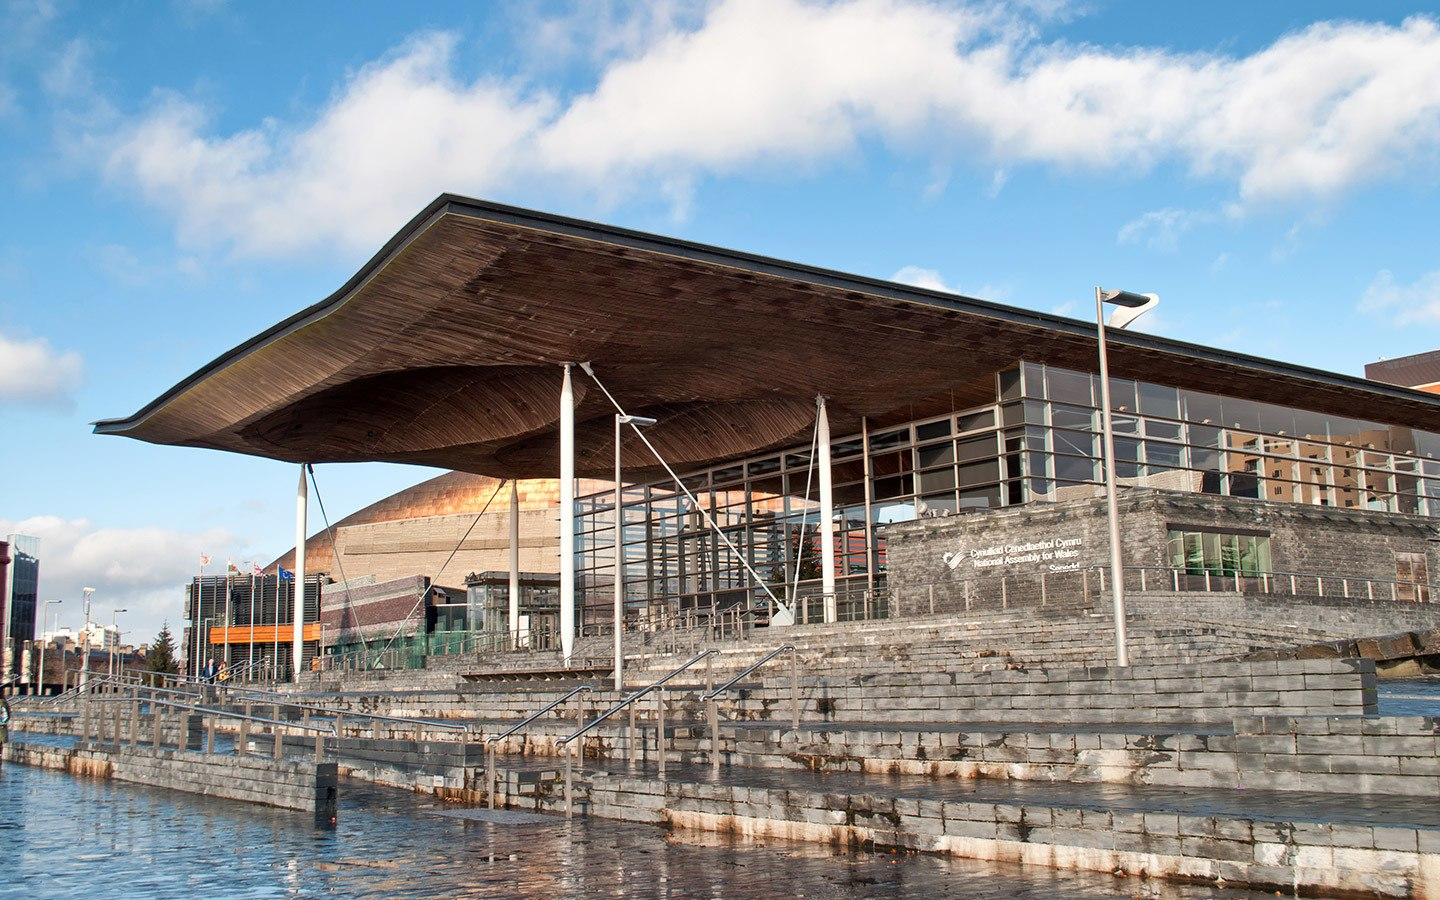 The Senedd – the Welsh Assembly's parliament building